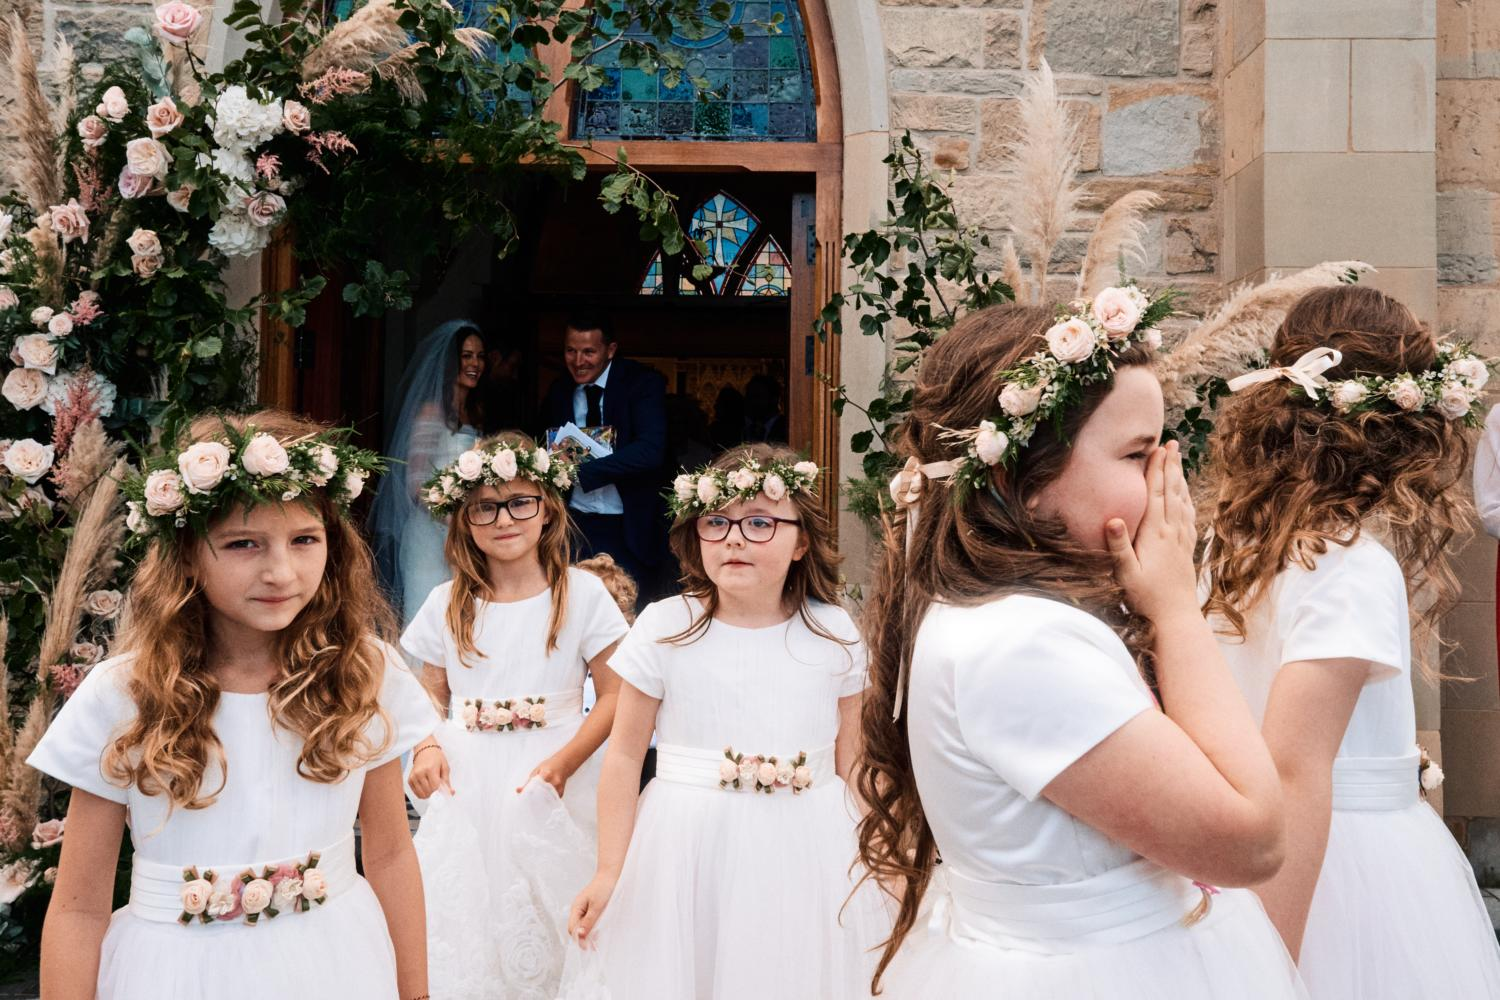 Five flower girls wearing floral head pieces